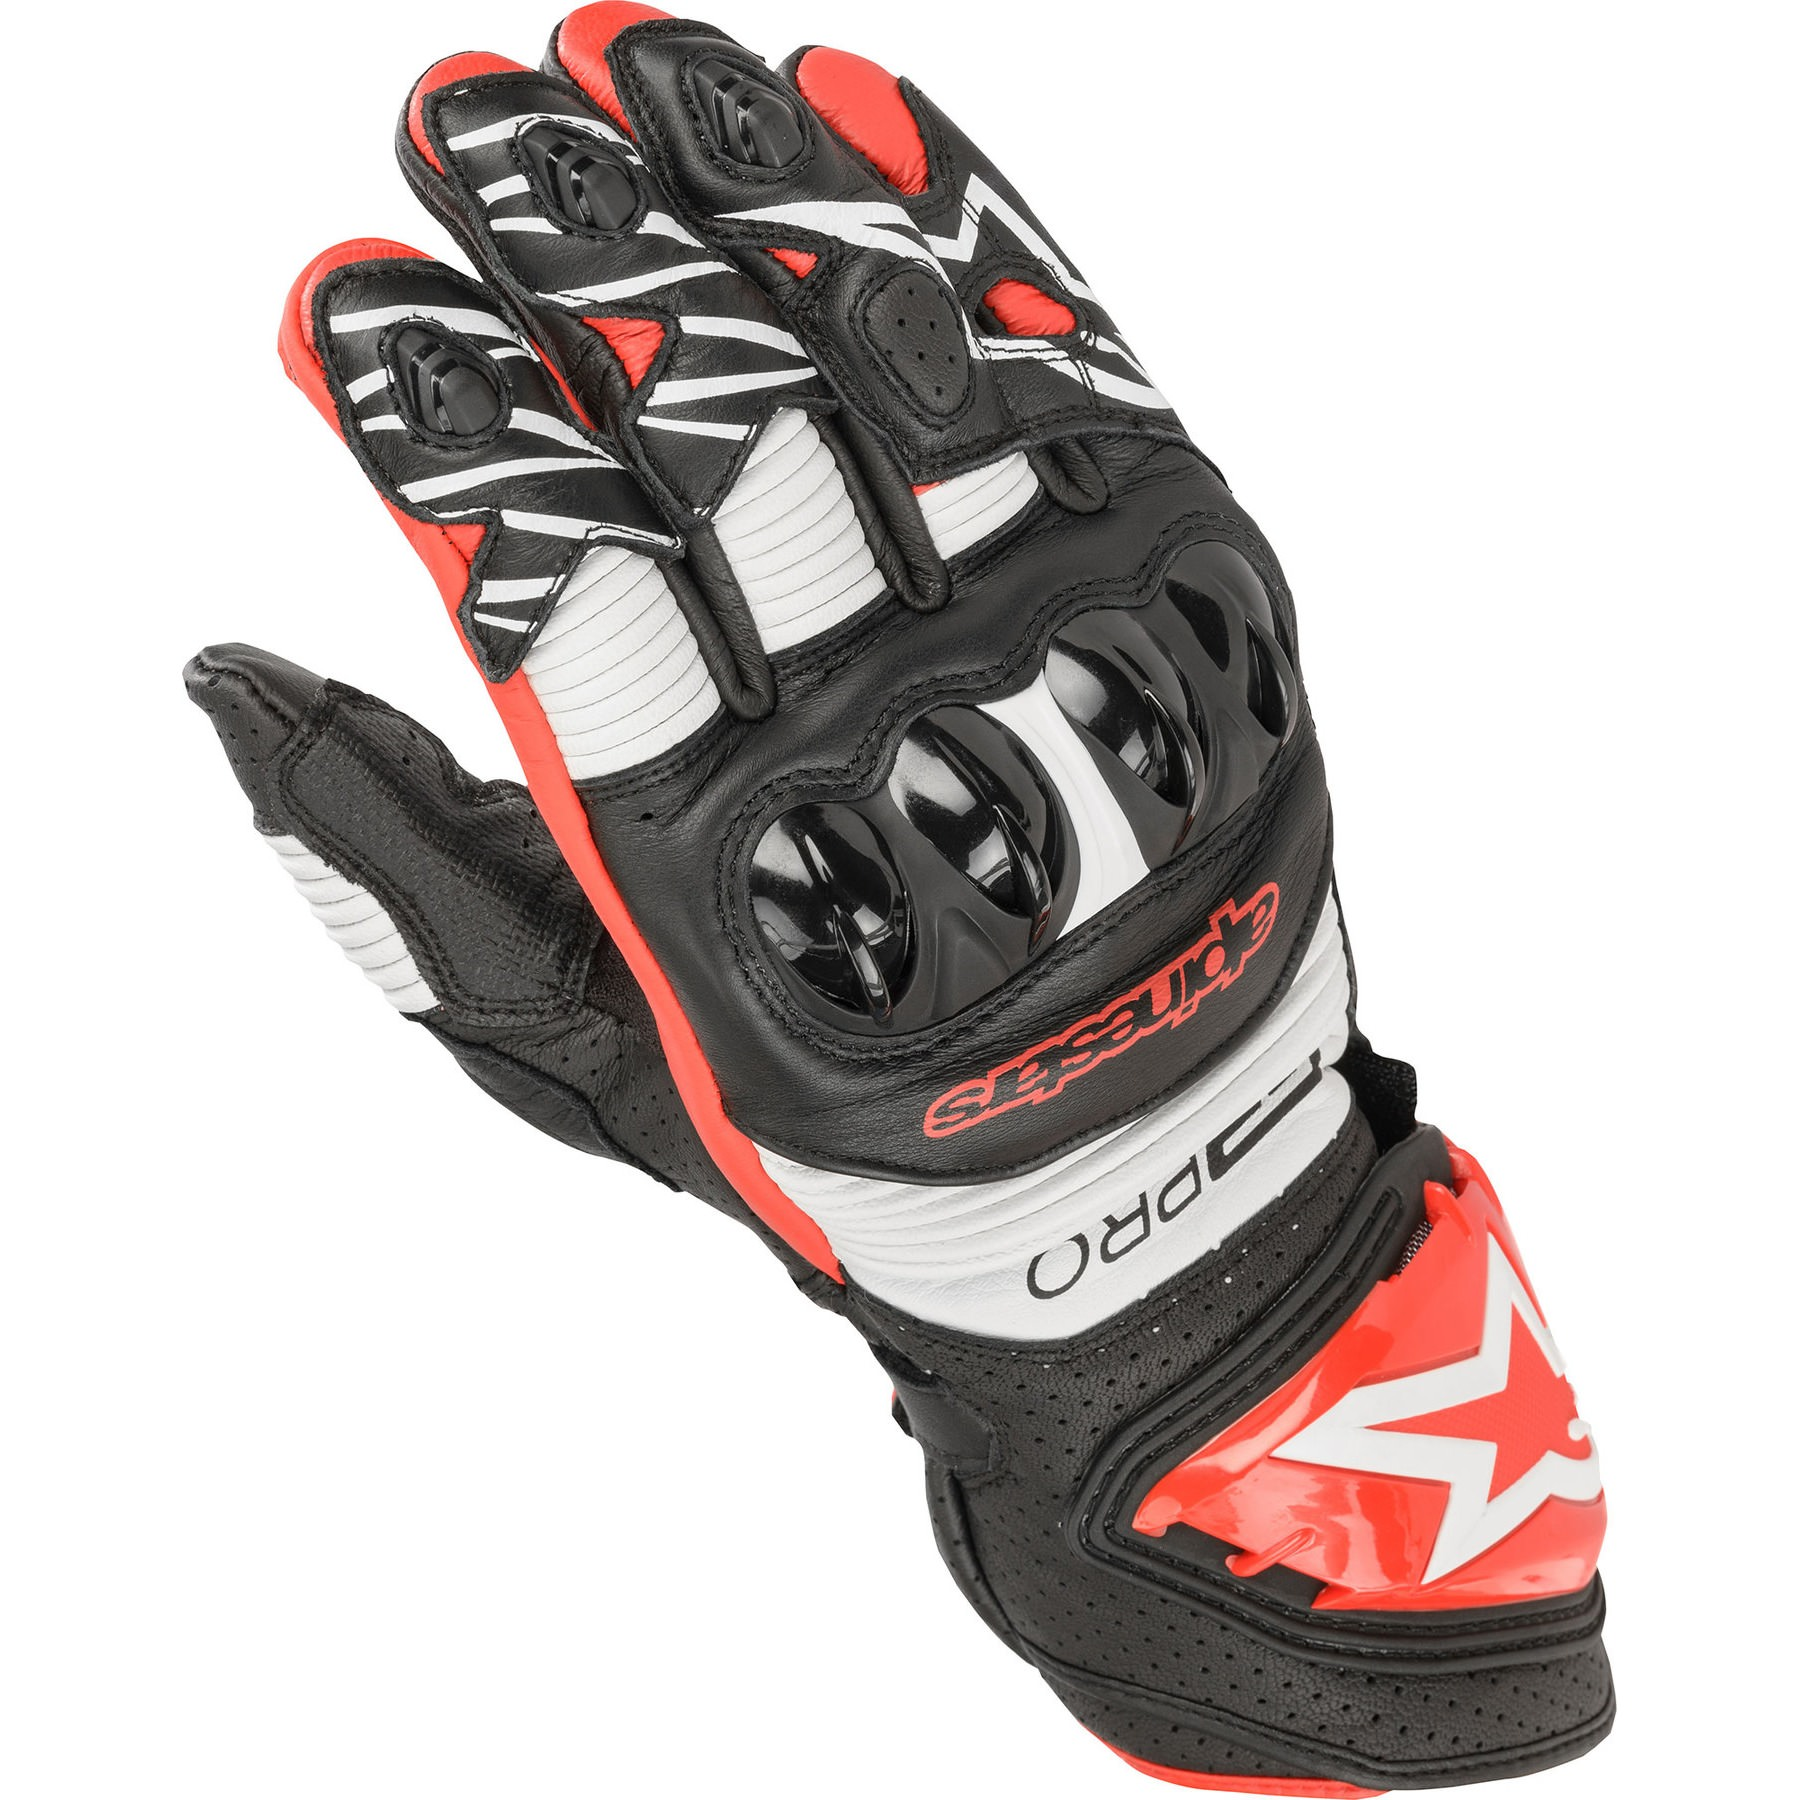 Outdoor Motocross Racing Gloves Riding Bike Gloves Sport Cycling Motorcycle GIFT